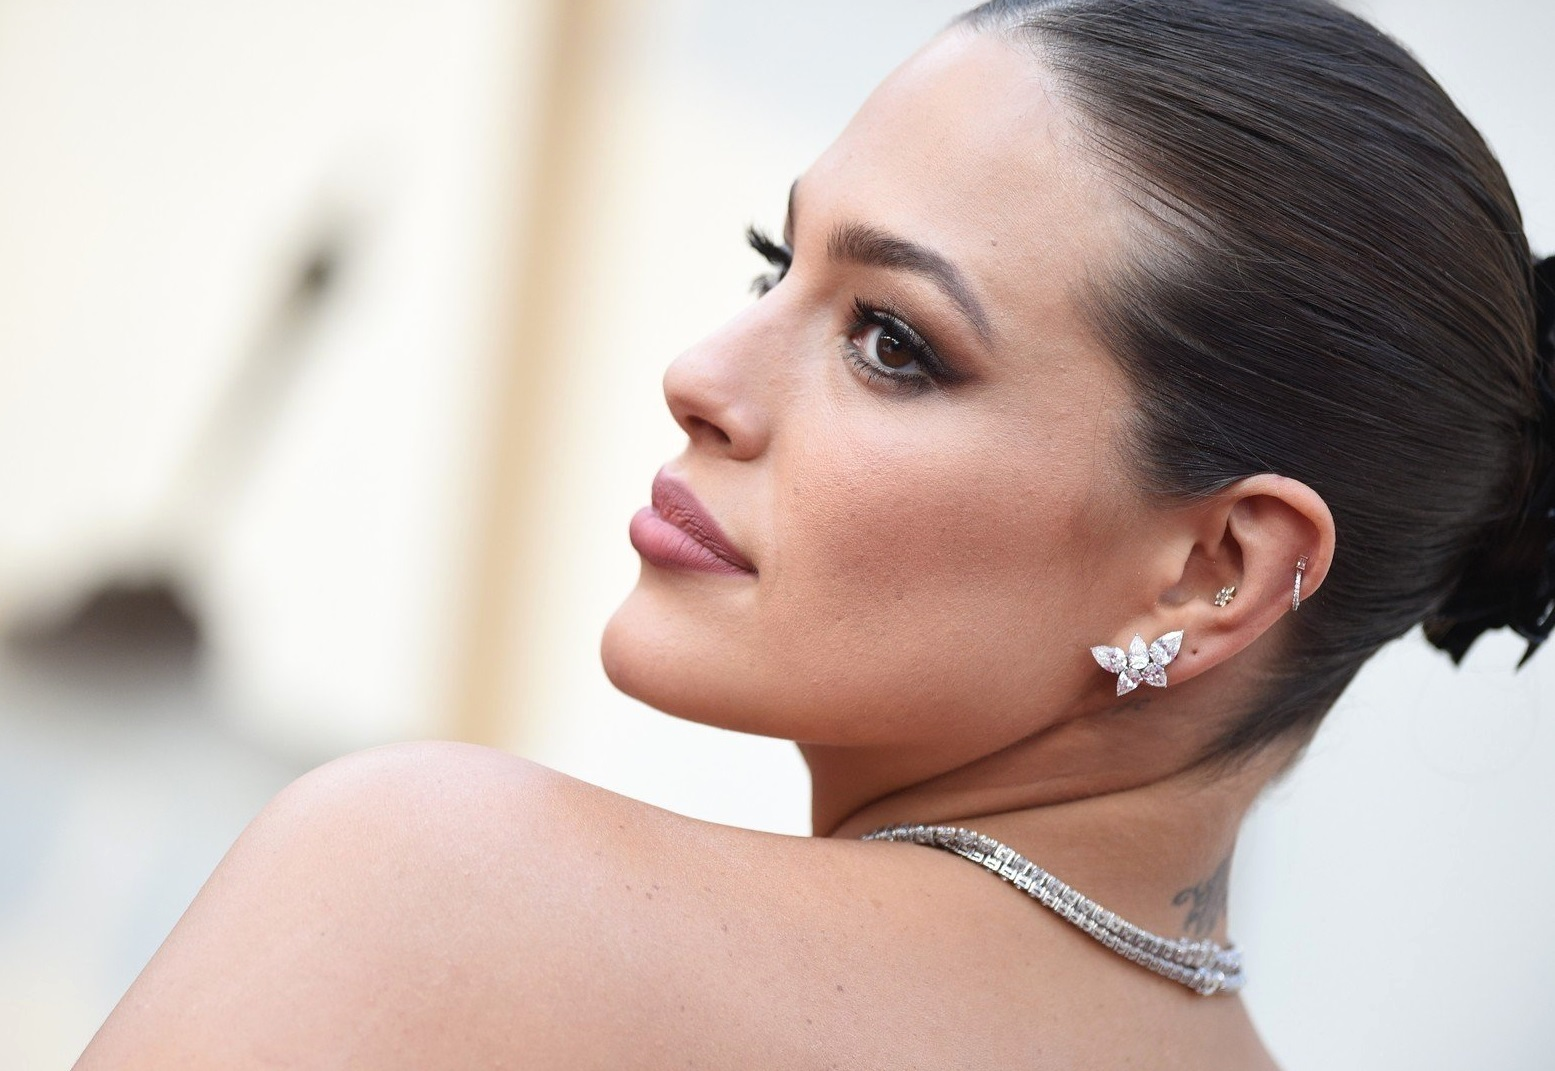 Ashley Graham walking the red carpet as arriving to the 91st Academy Awards (Oscars) held at the Dolby Theatre in Hollywood, Los Angeles, CA, USA, February 24, 2019. Photo by Lionel Hahn/ABACAPRESS.COM